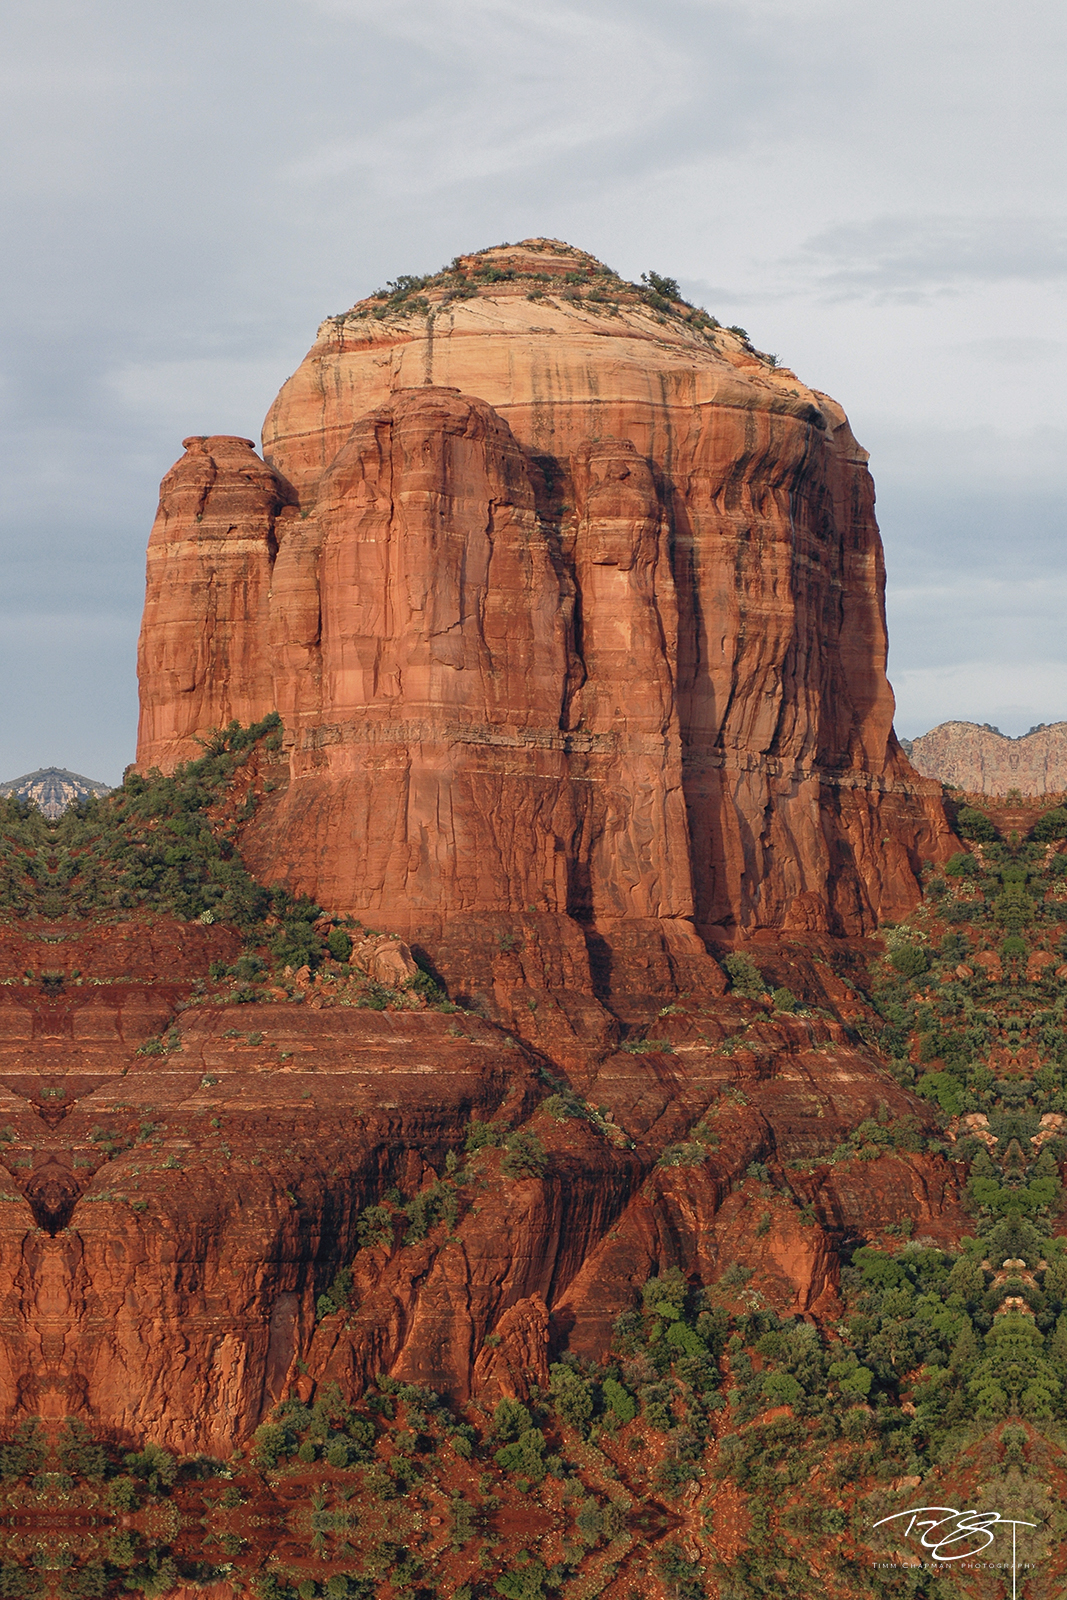 Arizona, Sedona, red rocks, red rock crossing, cathedral rock, vortex, tranquil landscapes, red rock country, photo